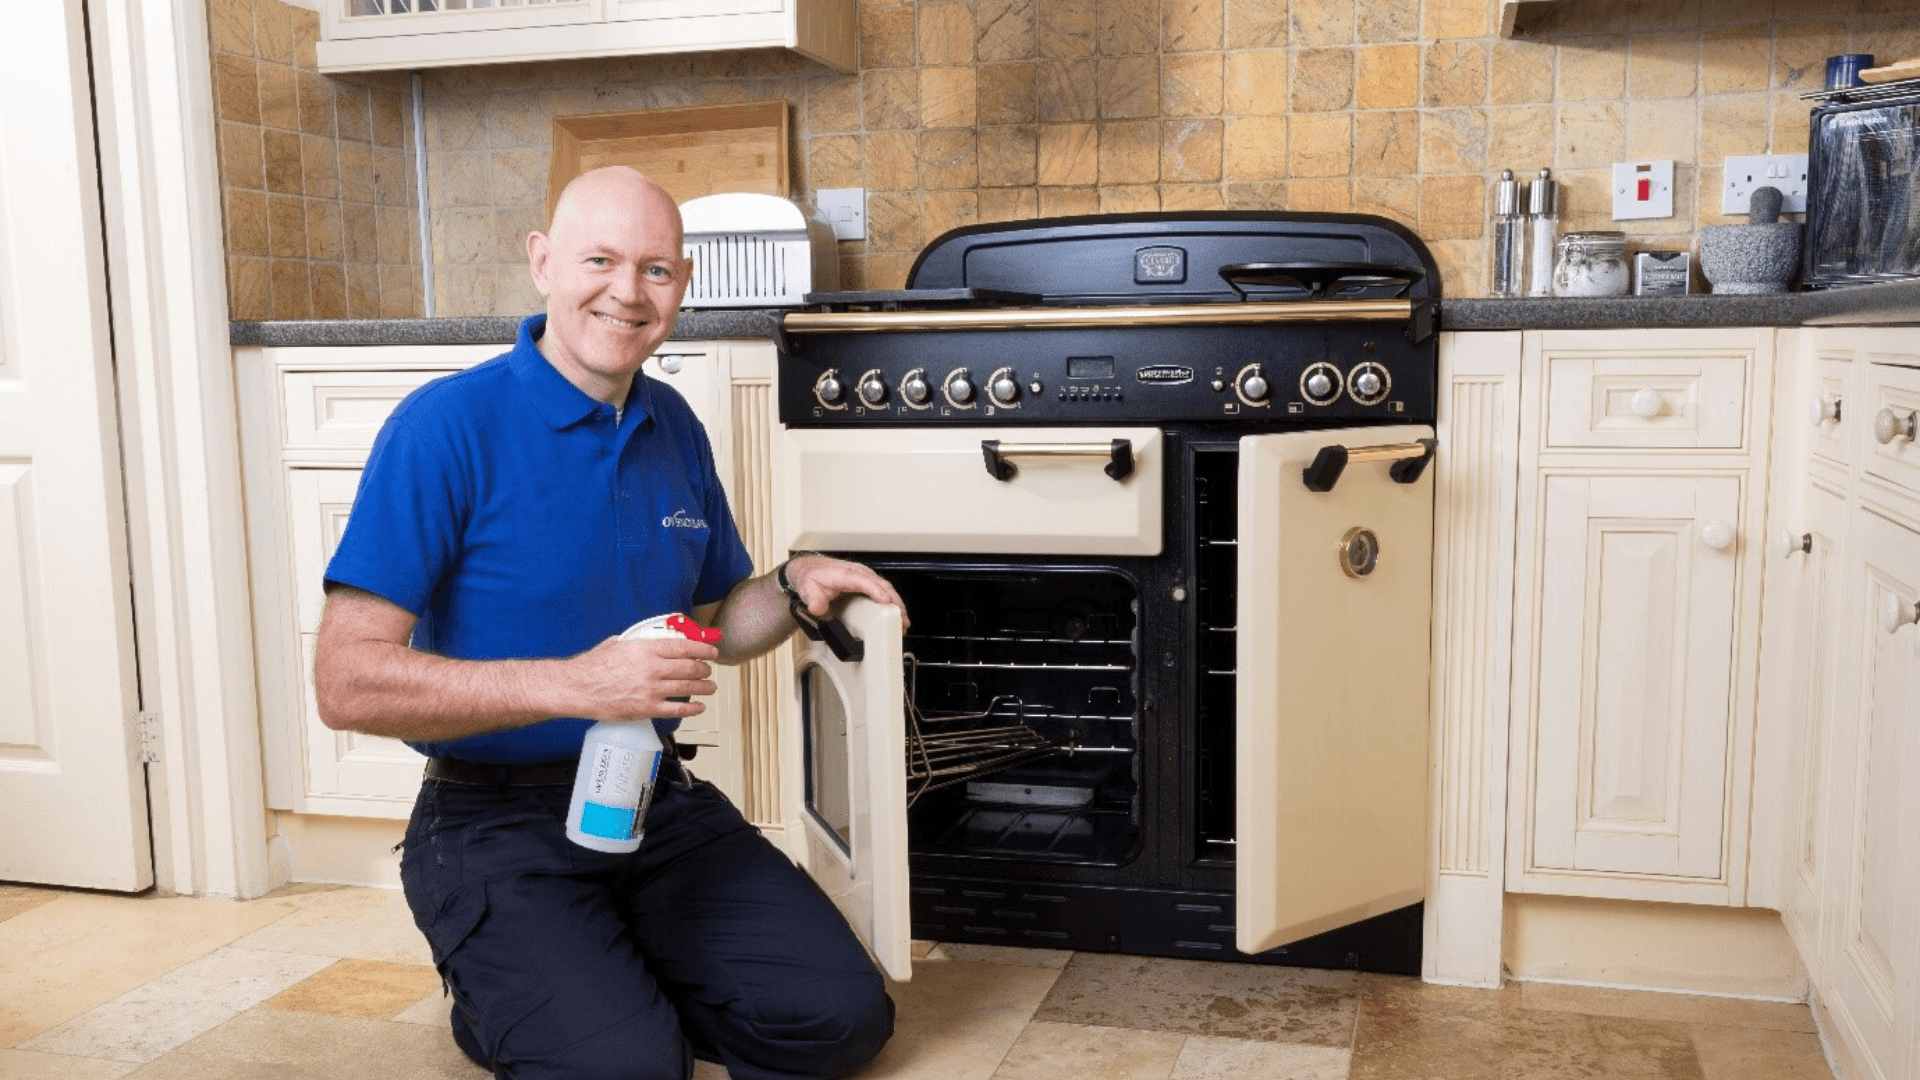 Oven Clean Featured Image Directory Feb 2020